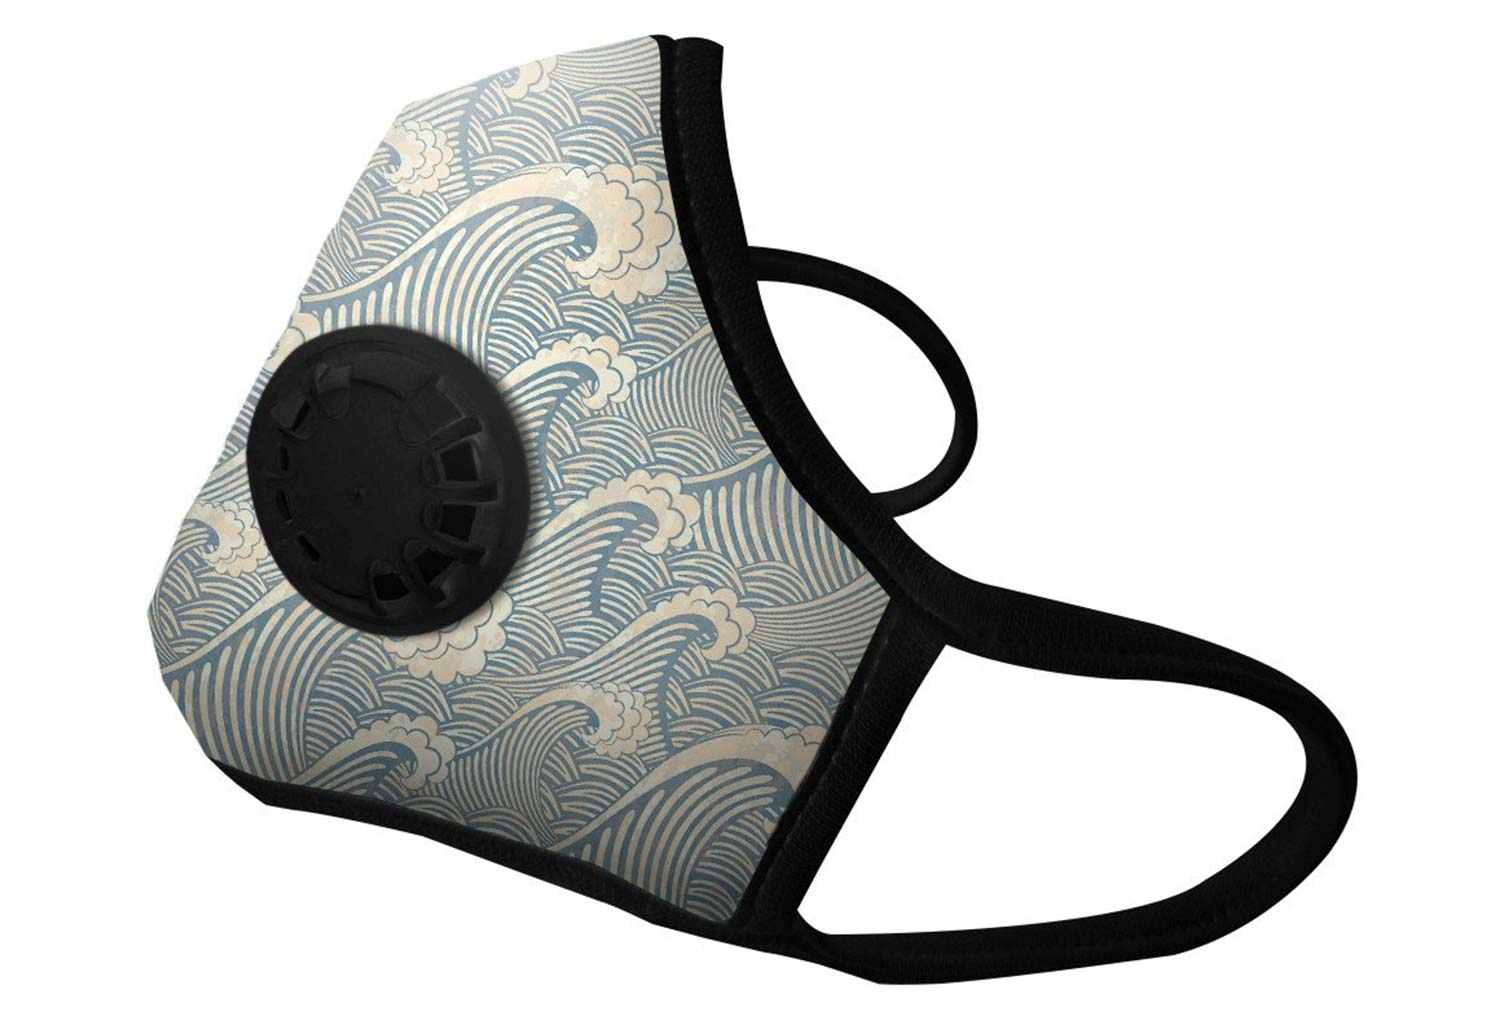 masque anti pollution vogmask n99cv waves bleu. Black Bedroom Furniture Sets. Home Design Ideas